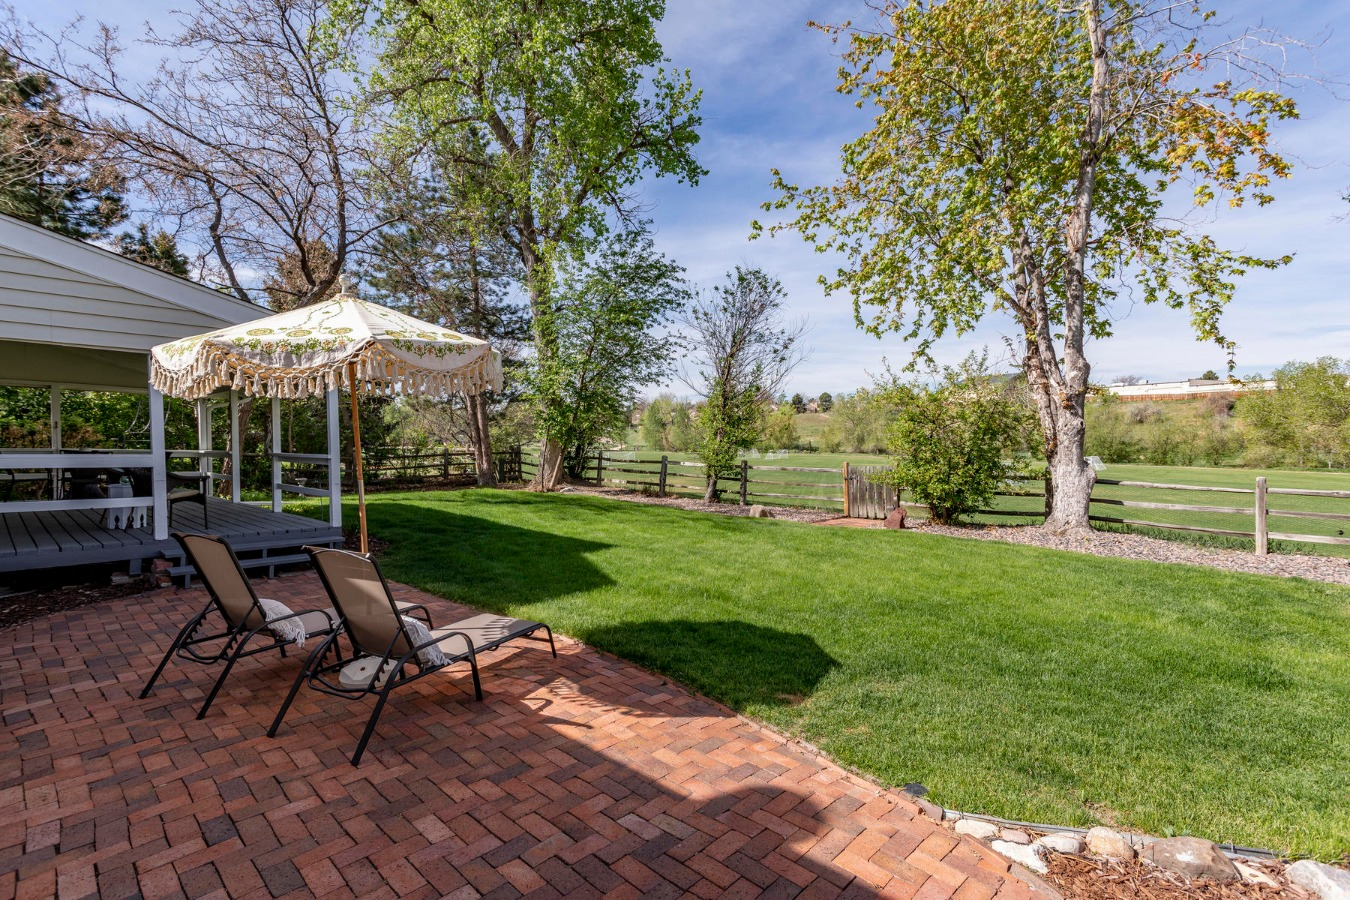 Brick Paver Patio Adds to Outdoor Living Spaces